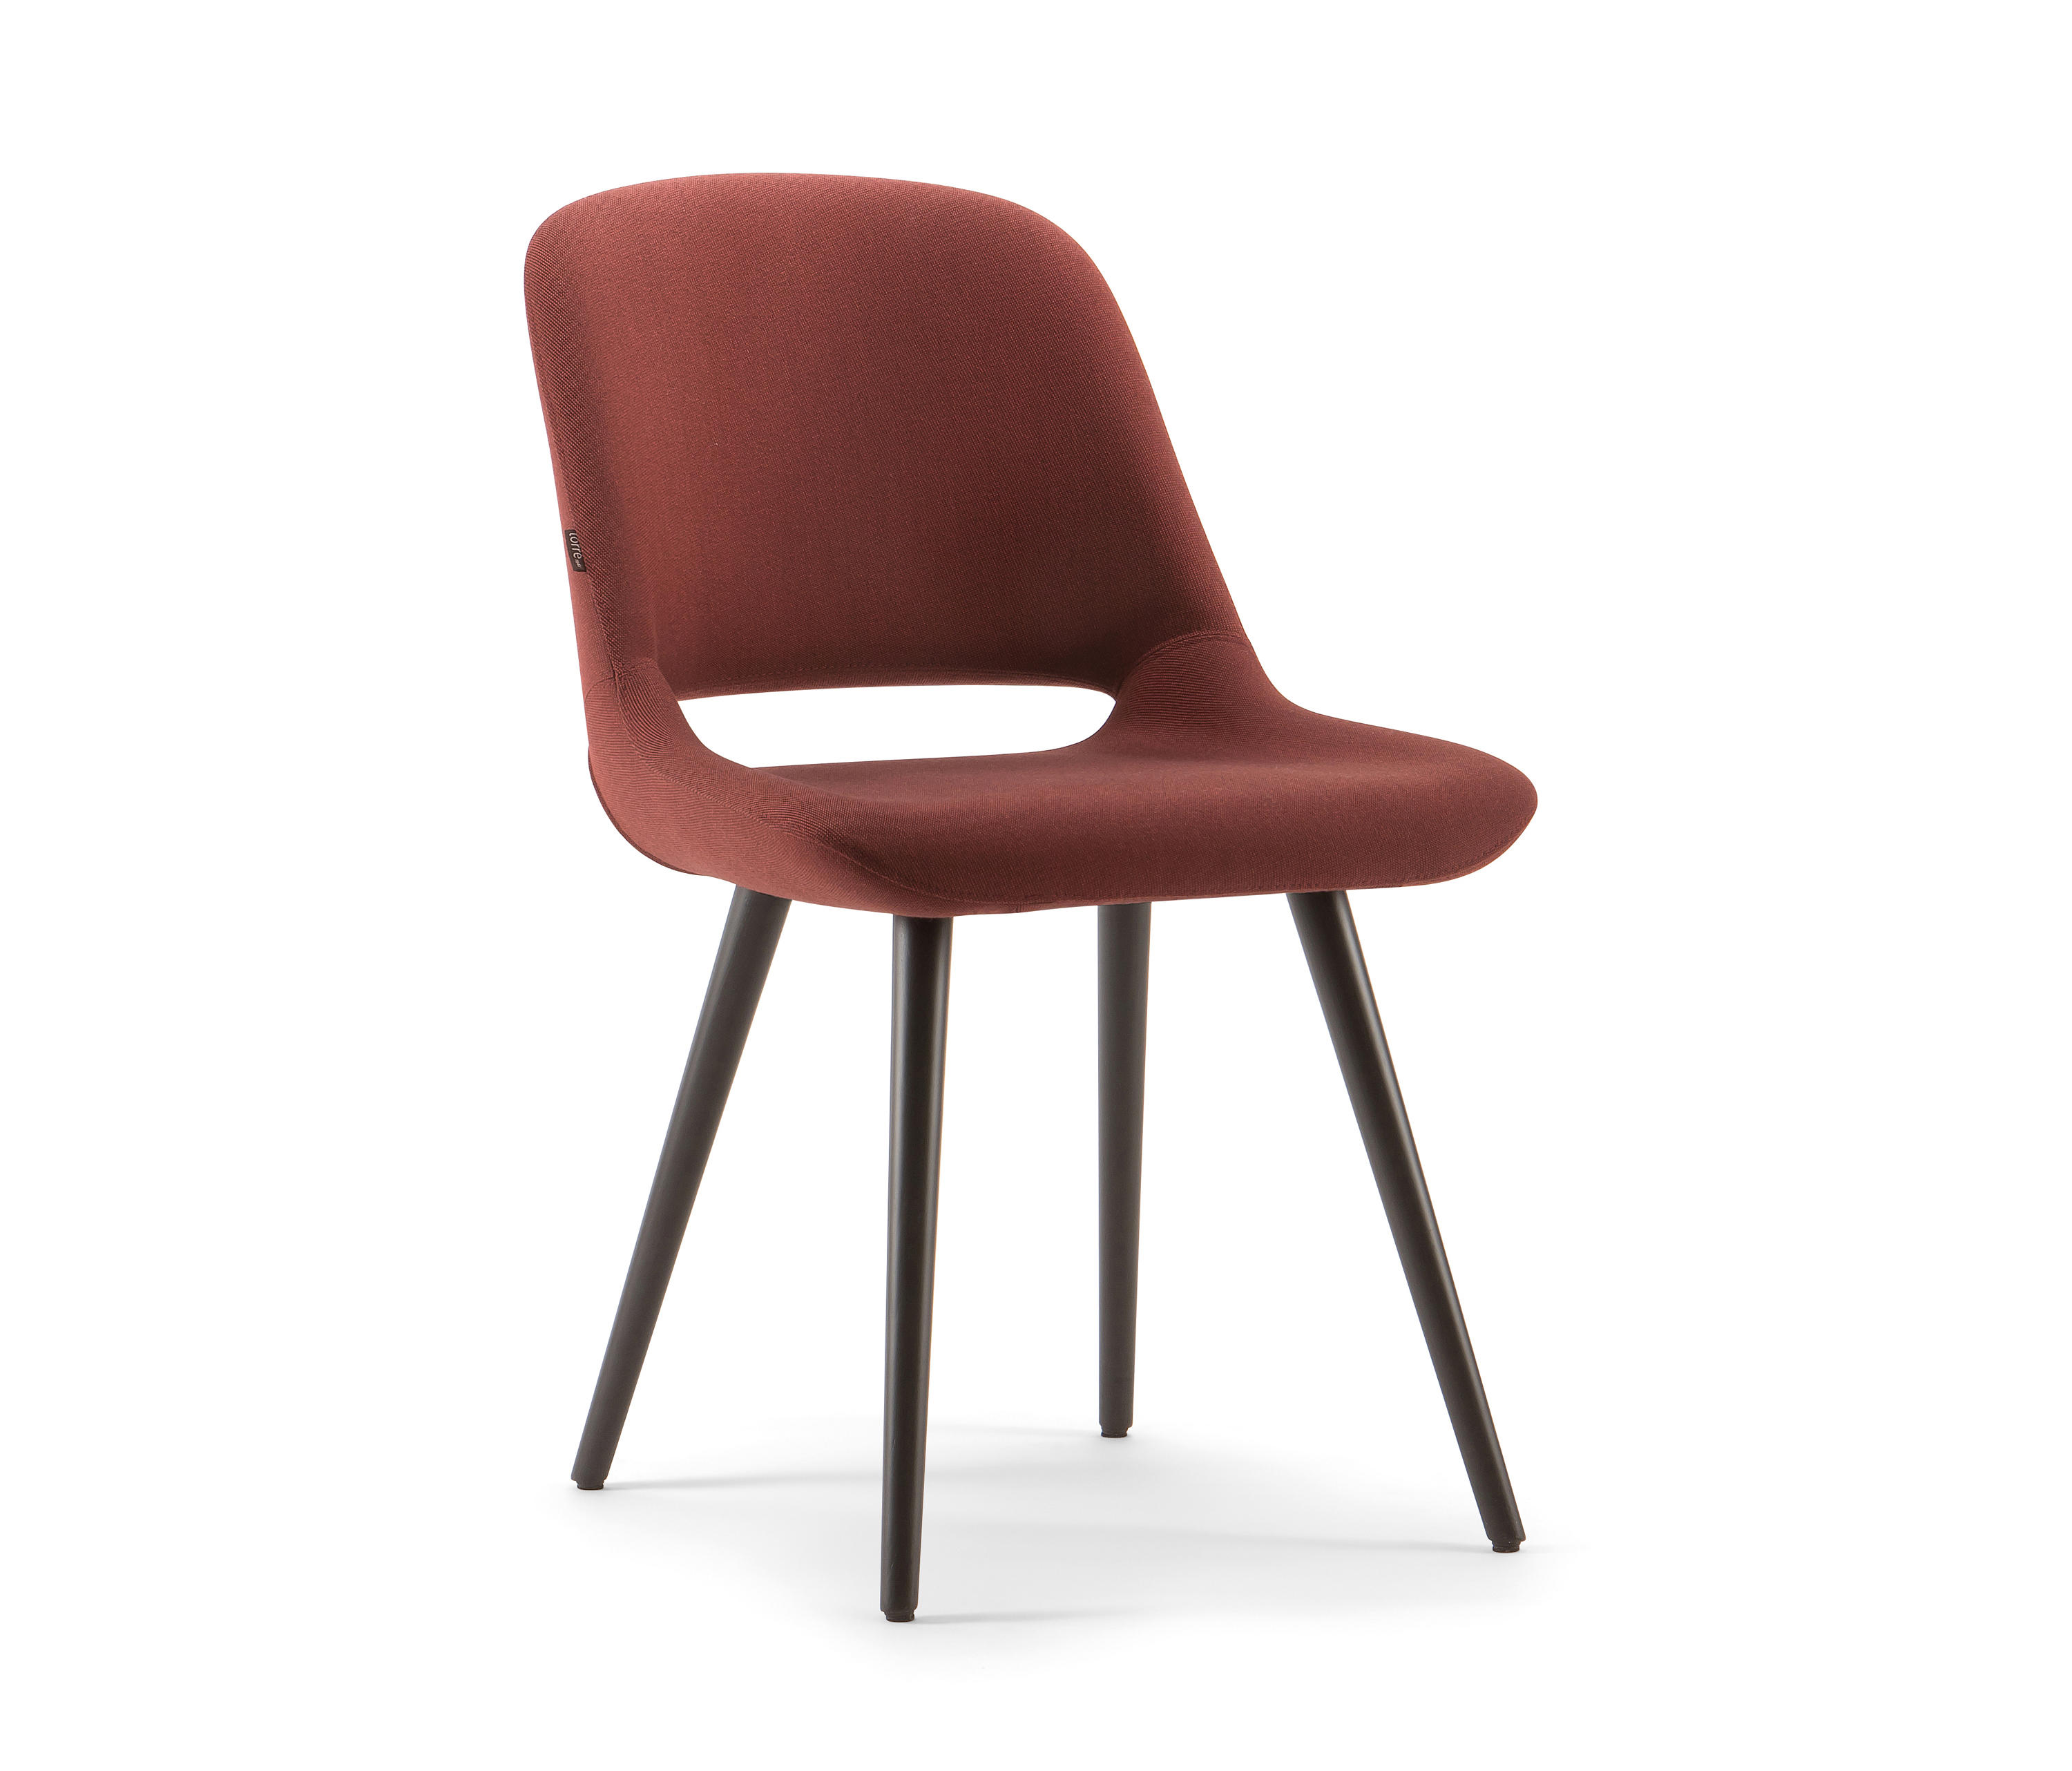 Magda 00 Base 100 By Torre 1961 | Chairs ...